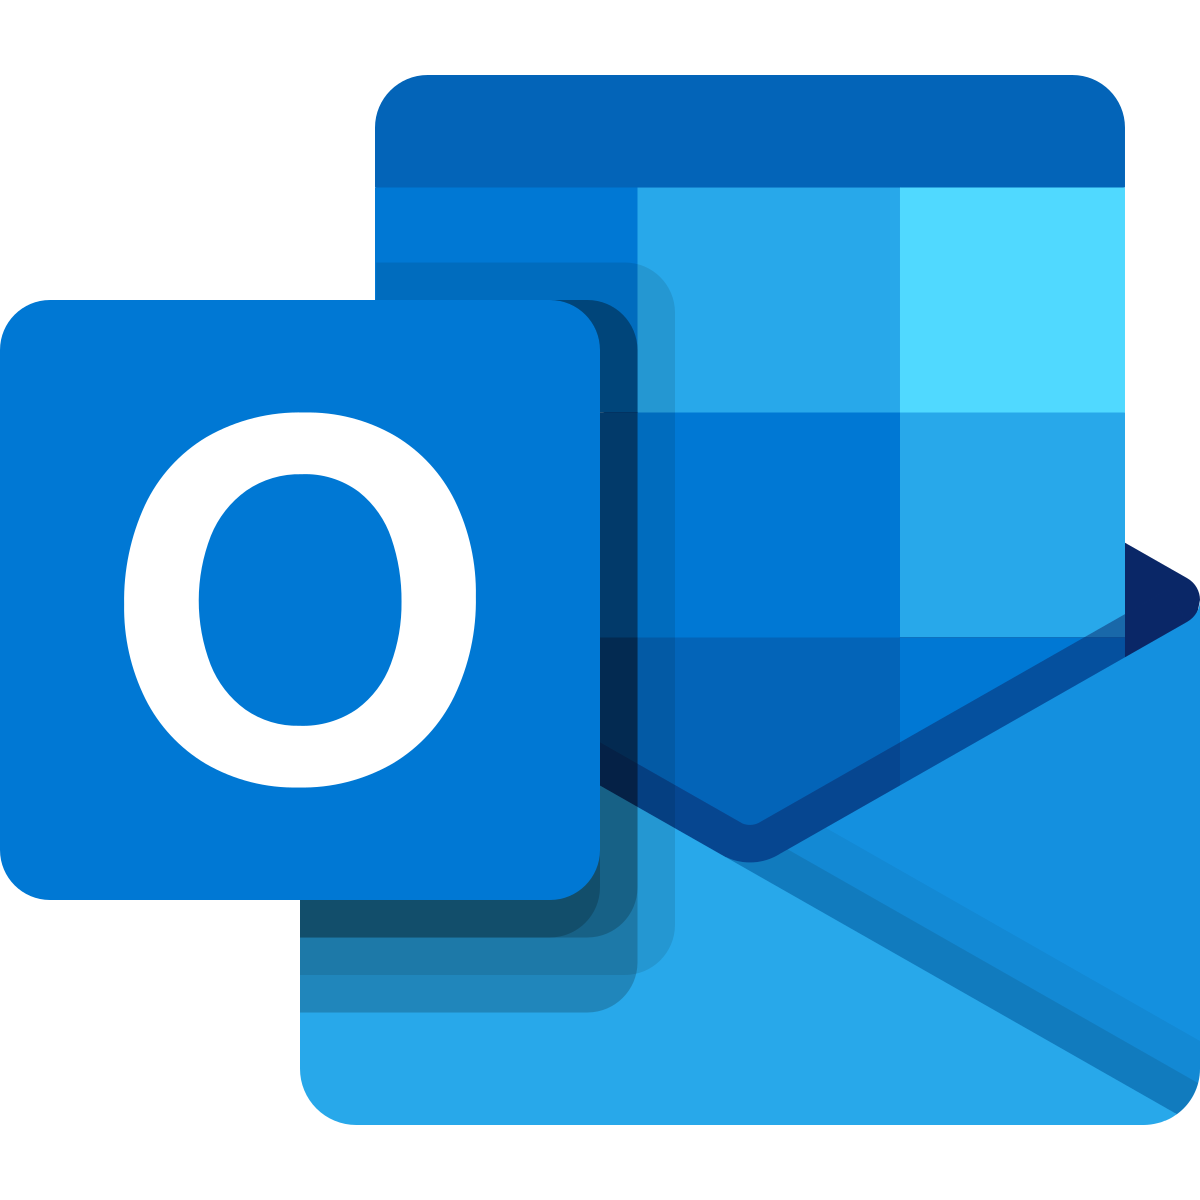 Microsoft Outlook users on Android can now report phishing messages